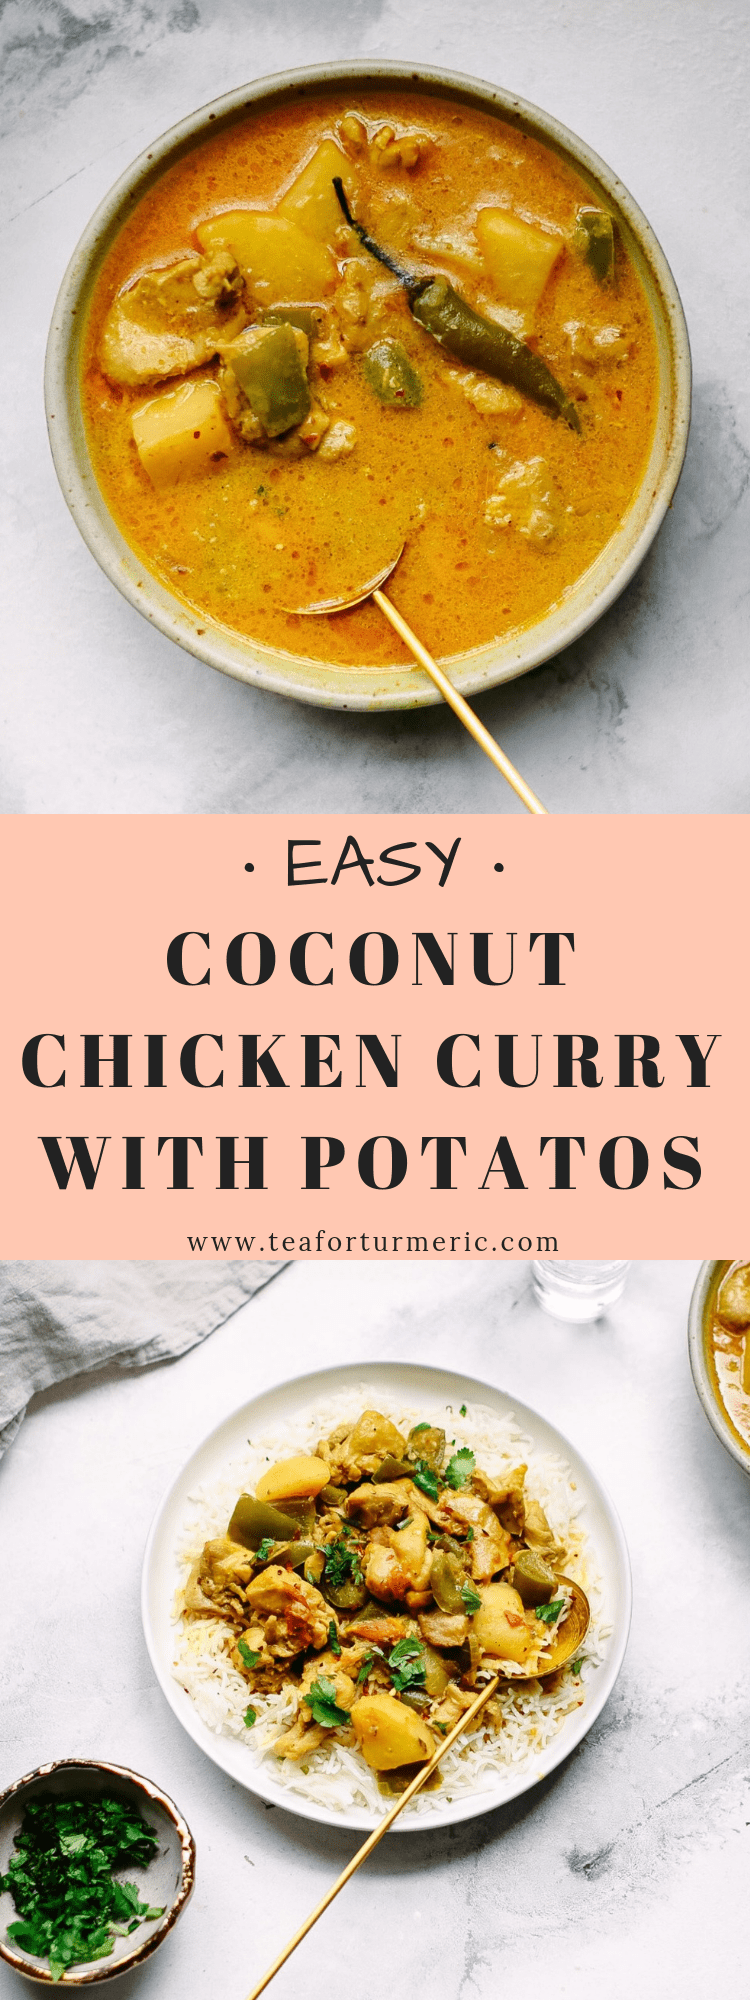 This coconut chicken curry with potatoes is made from scratch in the Pakistani & North Indian style but uses coconut milk to give it a korma-like finish. This recipe uses clean, wholesome ingredients and good-for-you spices that you likely have on hand!